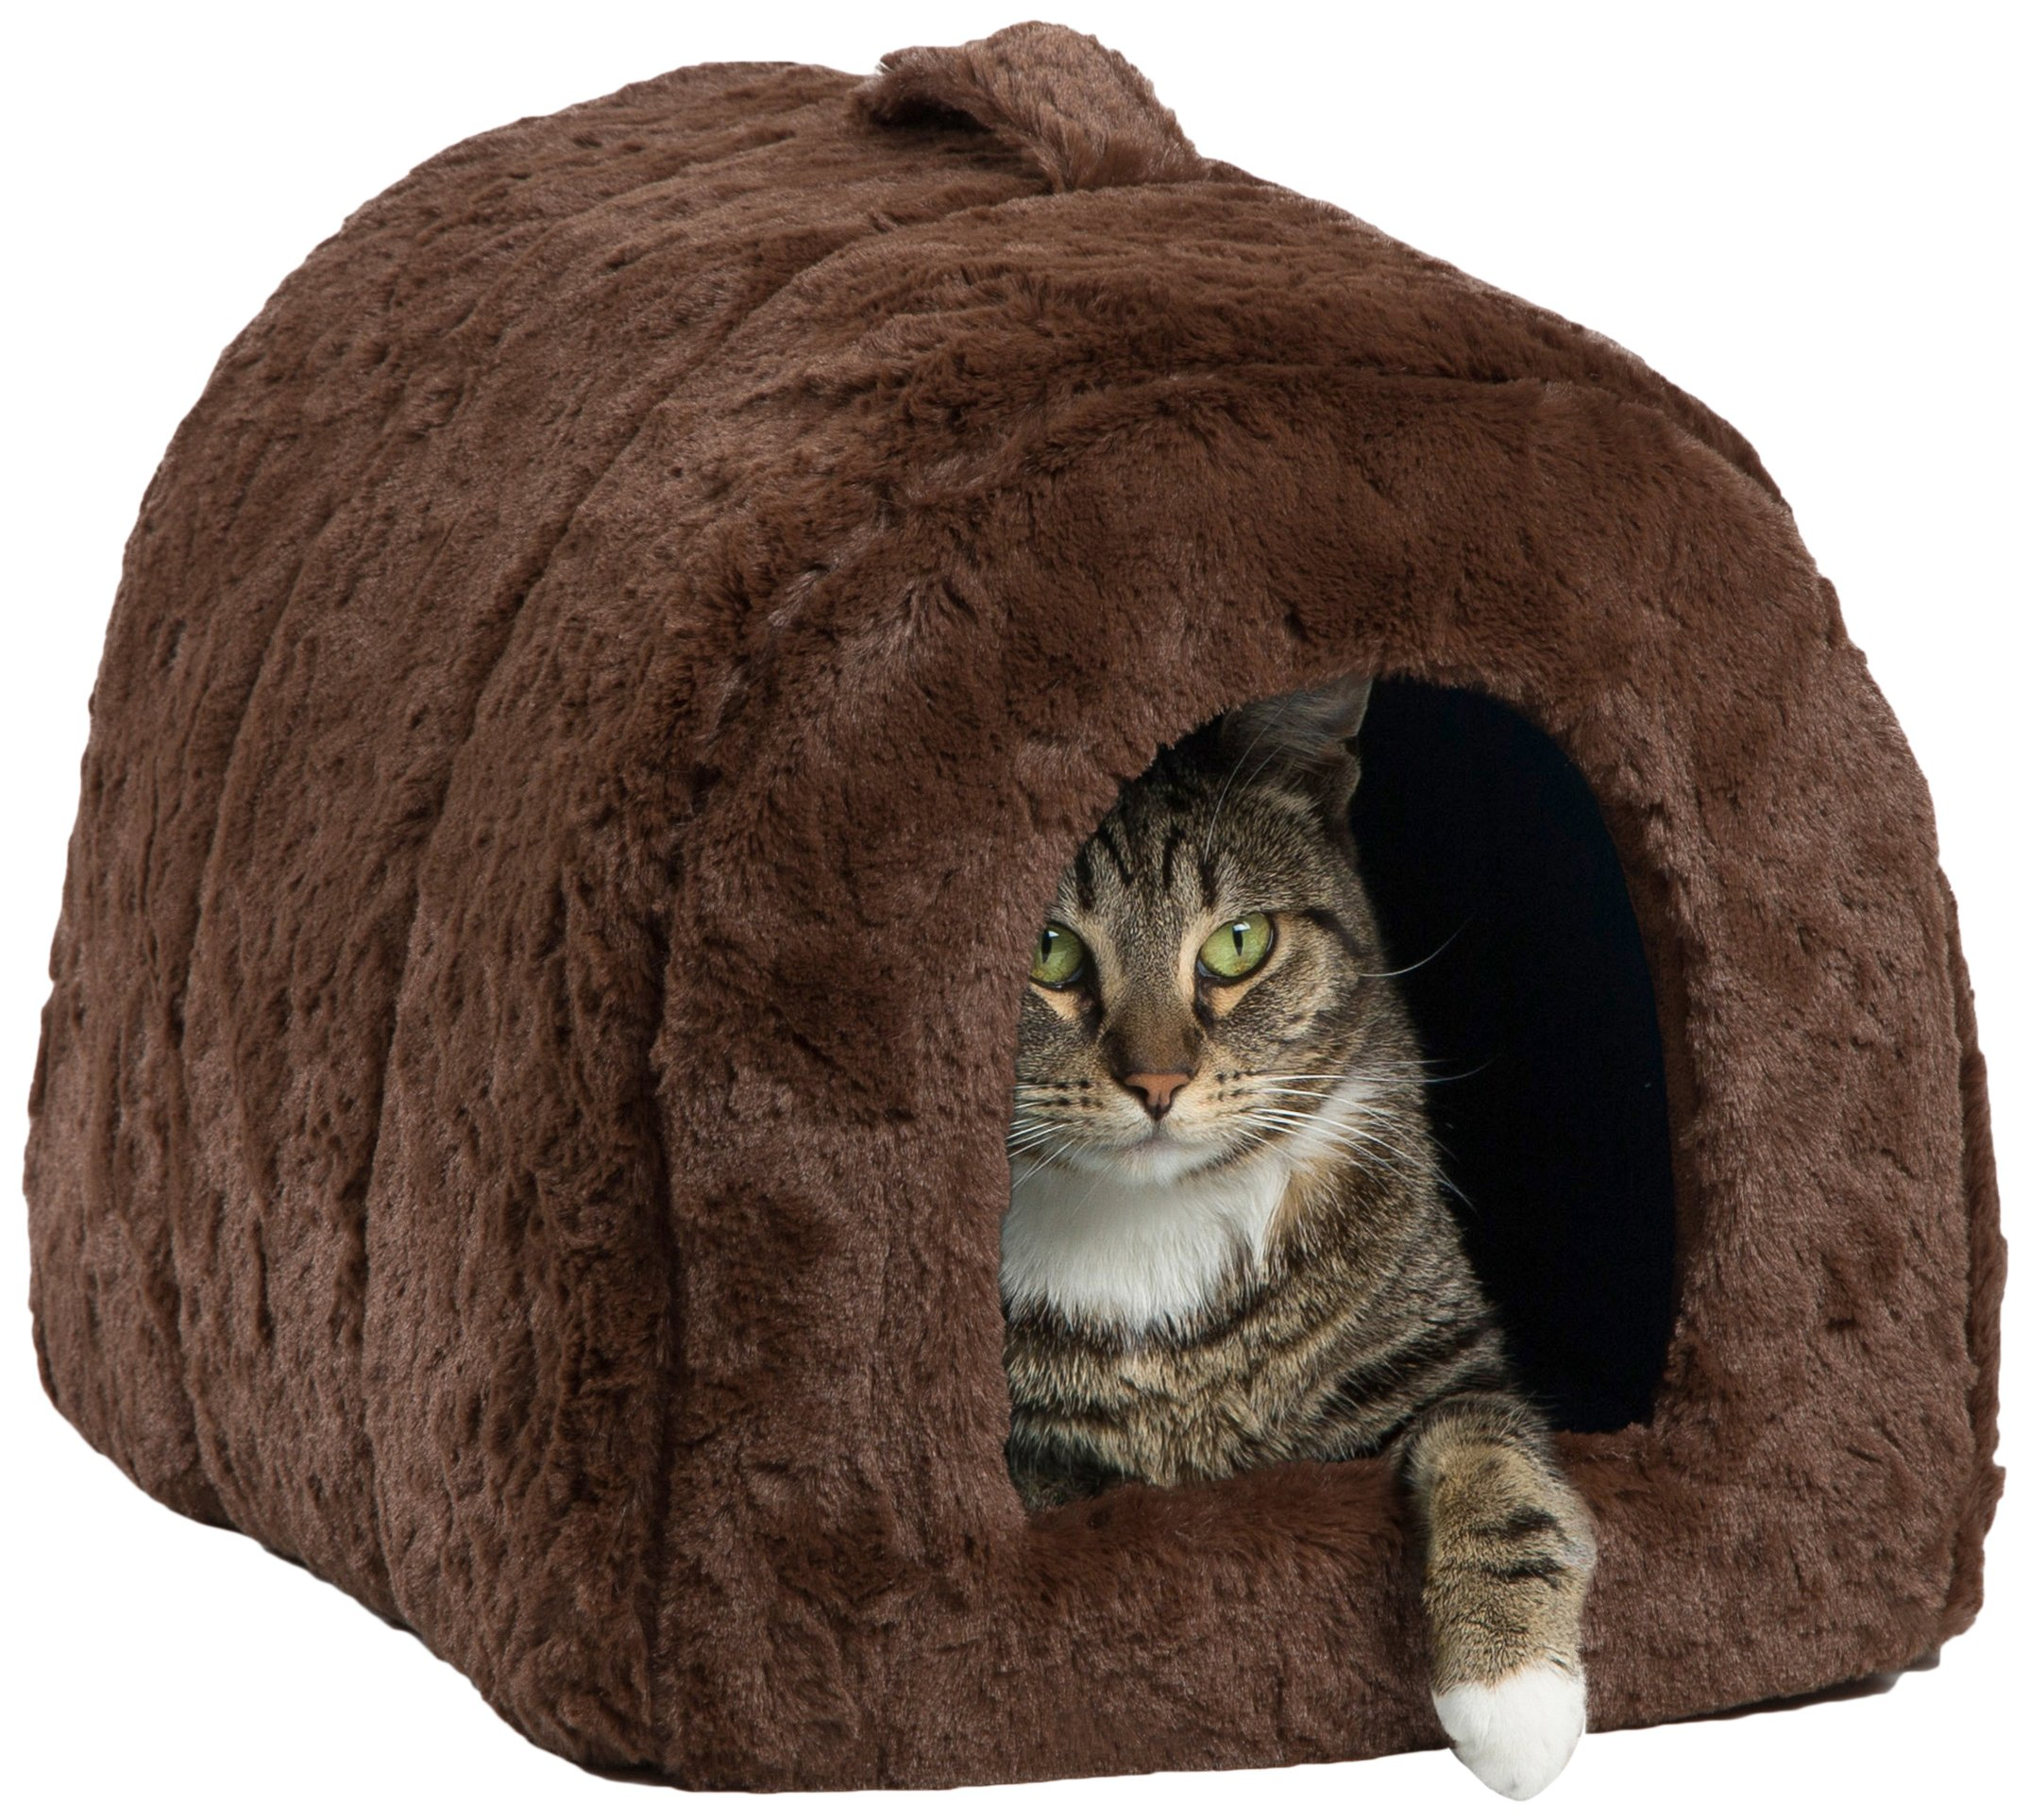 Best Friends by Sheri Pet Igloo Hut, Lux, Dark Chocolate - Cat and Small Dog Bed Offers Privacy and Warmth for Better Sleep - 17x13x12 - for Pets 9lbs or Less